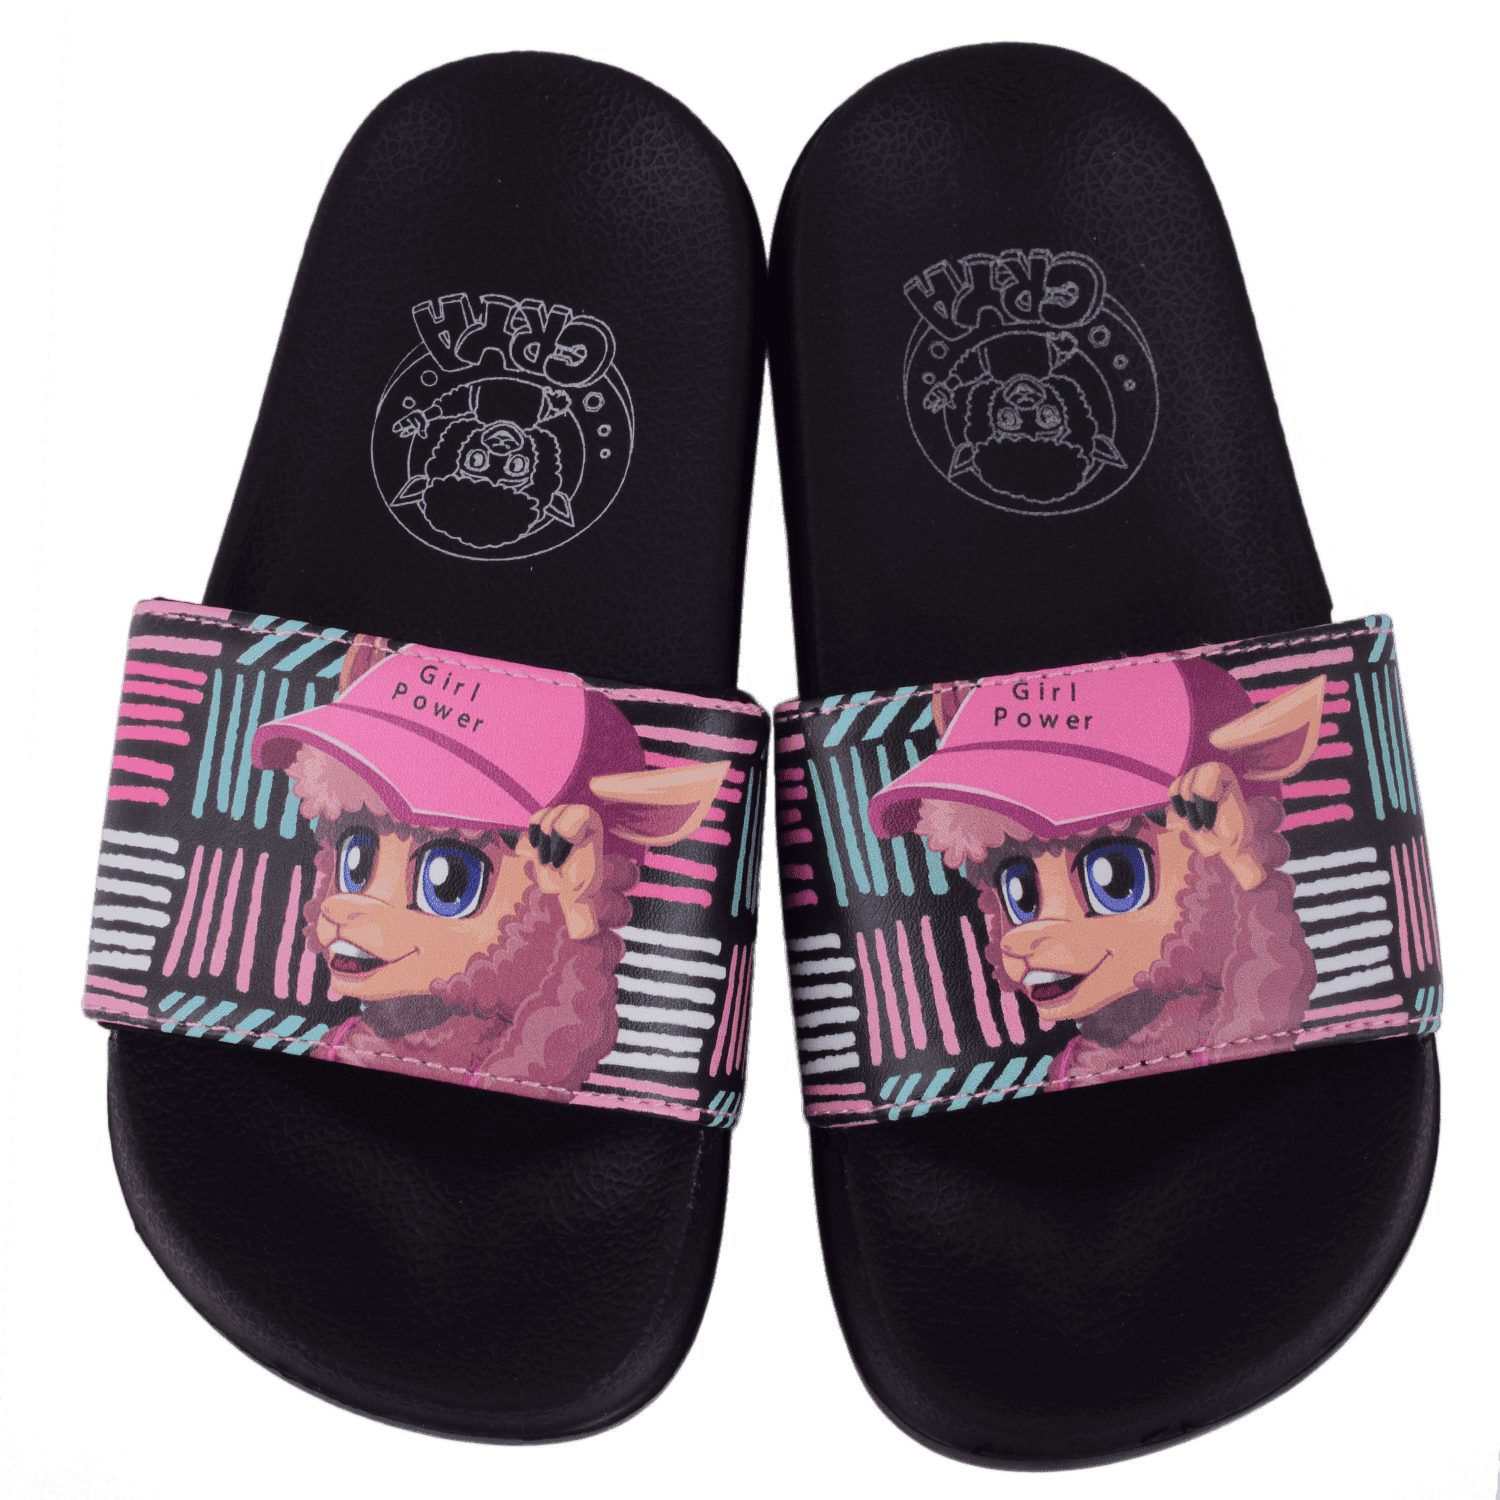 crya-girl-power-slide-on-slipper-slsl8002girbla